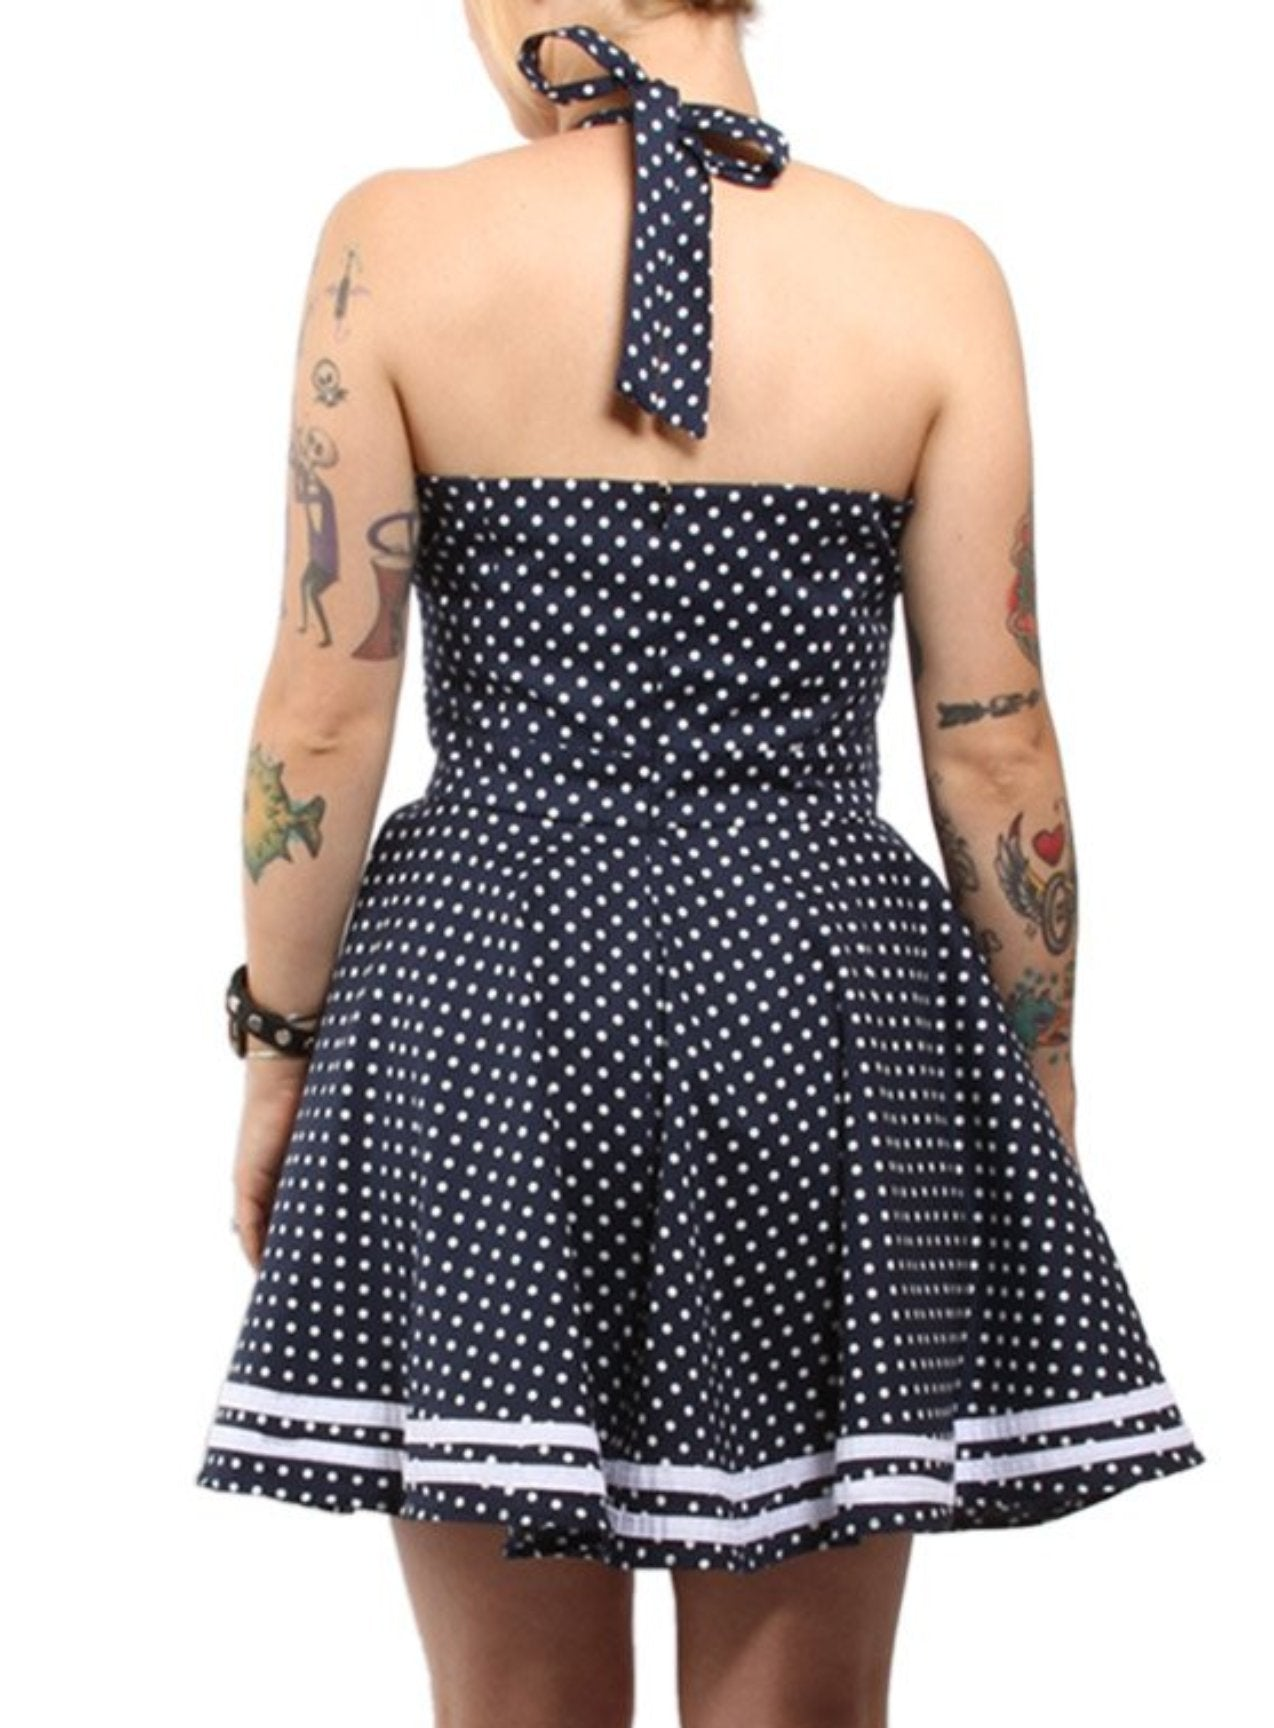 The DEVIL IN DEEP BLUE SEA Swing Dress - LAST ONE IS A 2XL!